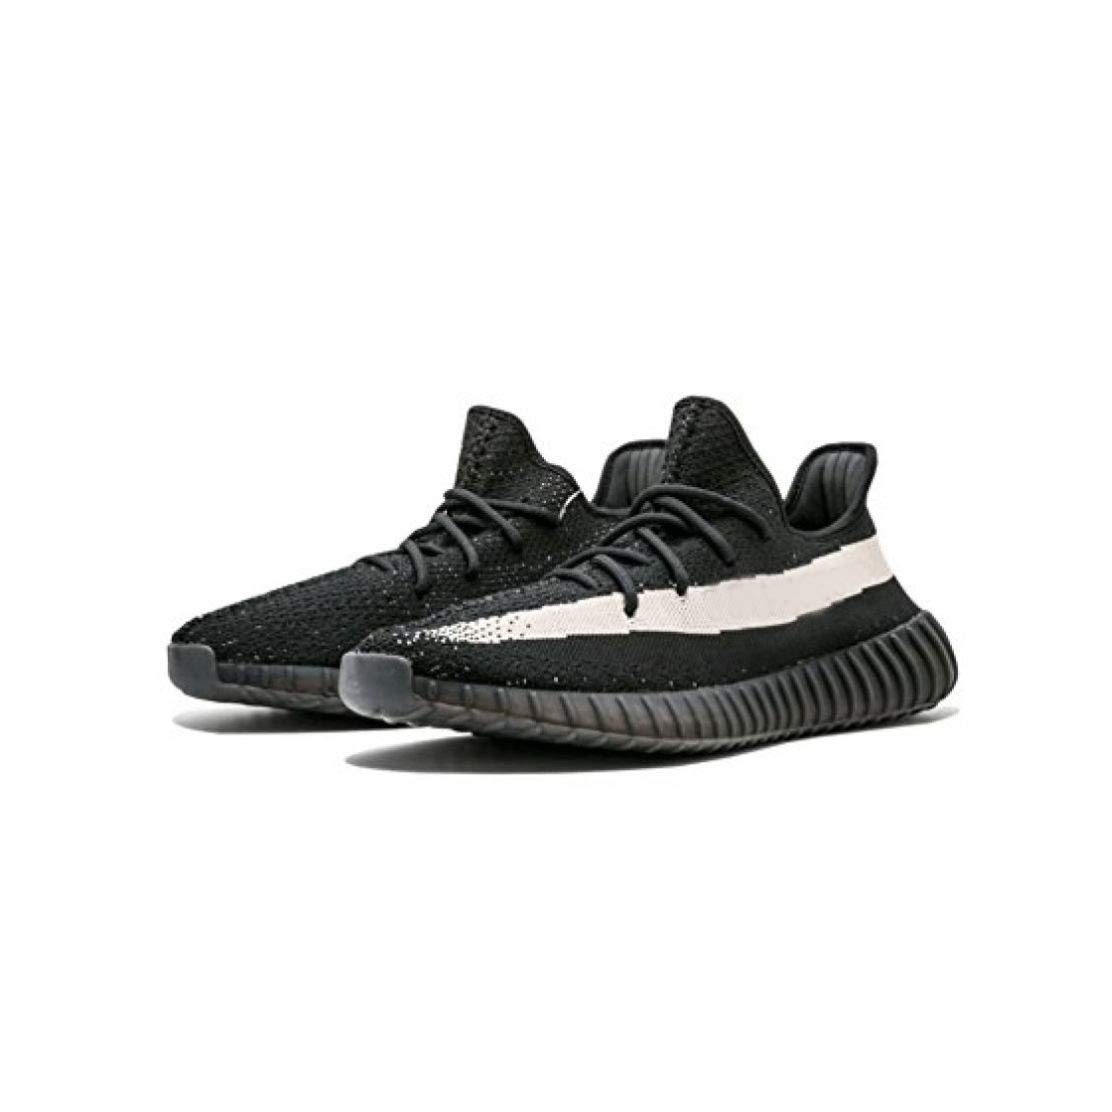 more photos 52b01 0d826 Knowtec Yeezy Boost Sply 350 V2 Running Shoes